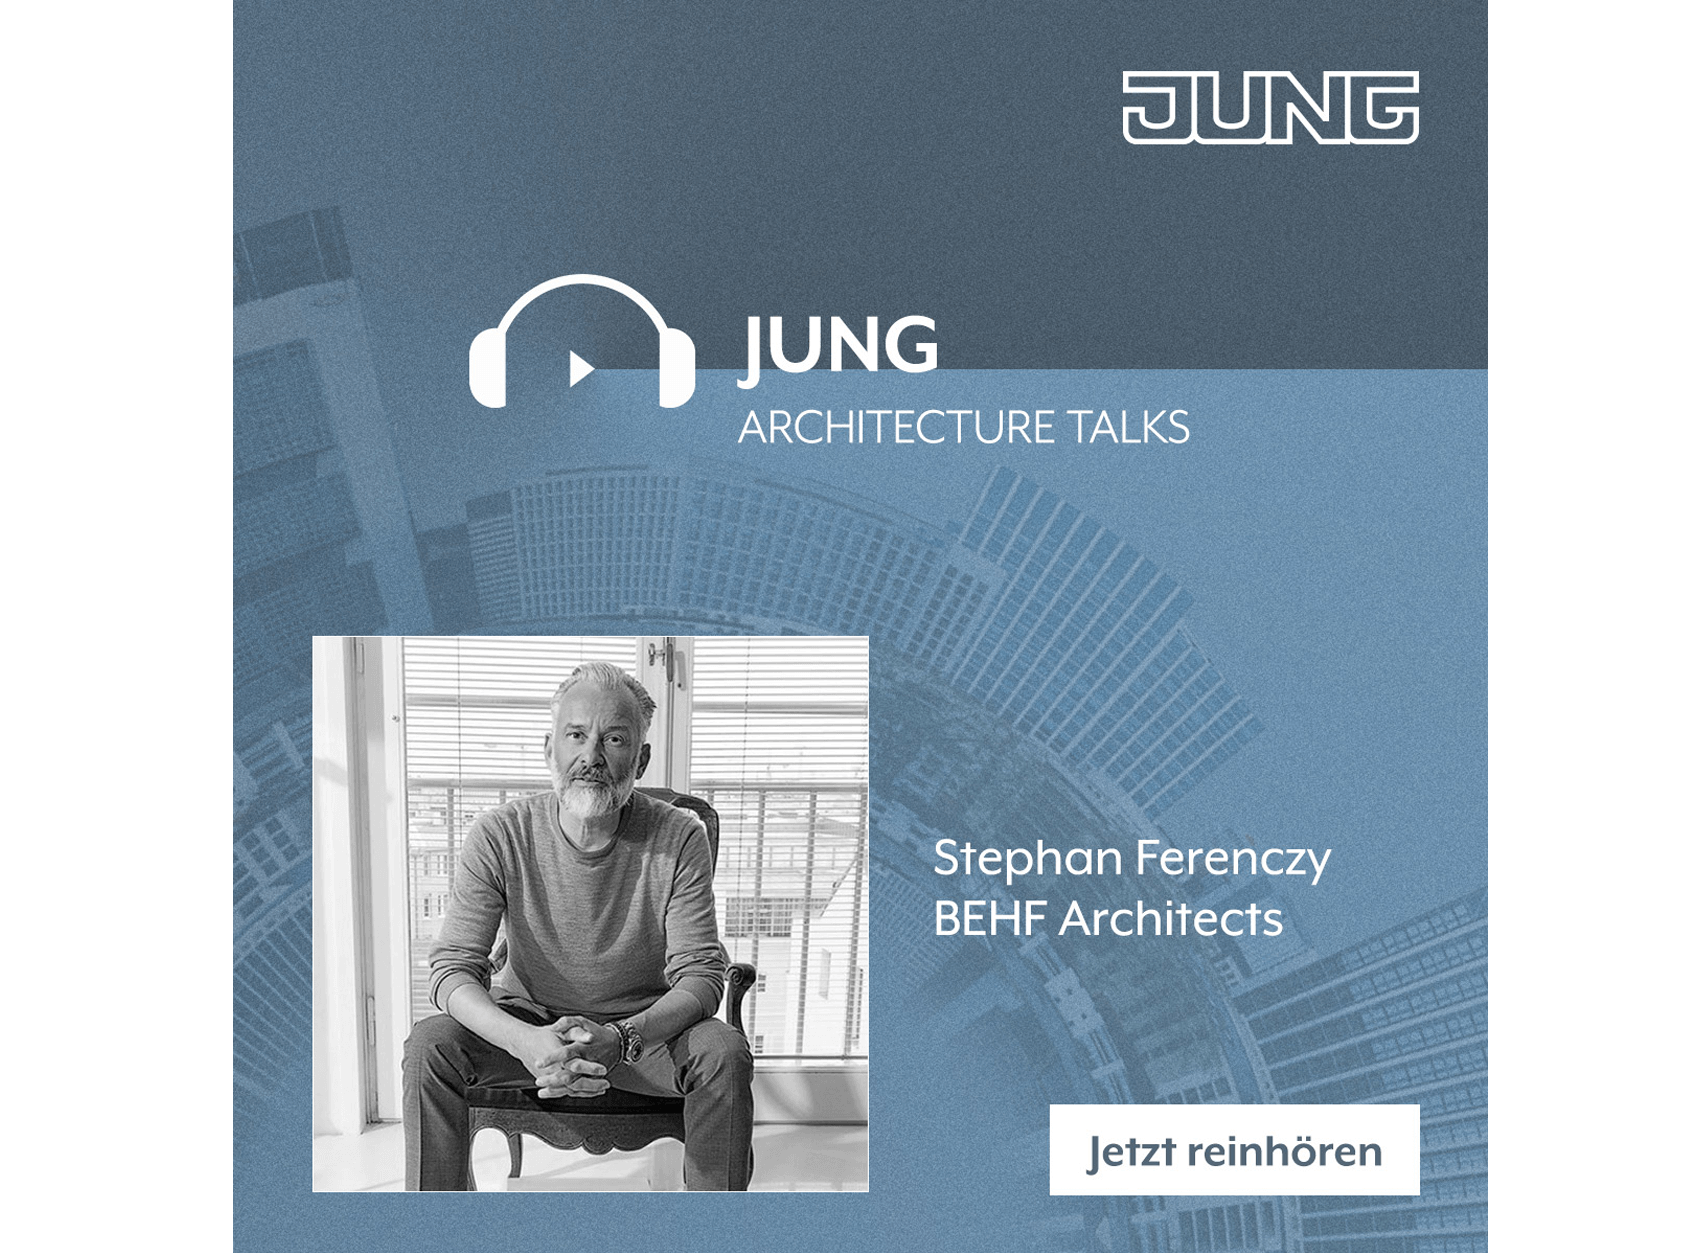 JUNG Architecture Talks - Podcast - Stephan Ferenczy - BEHF Architects